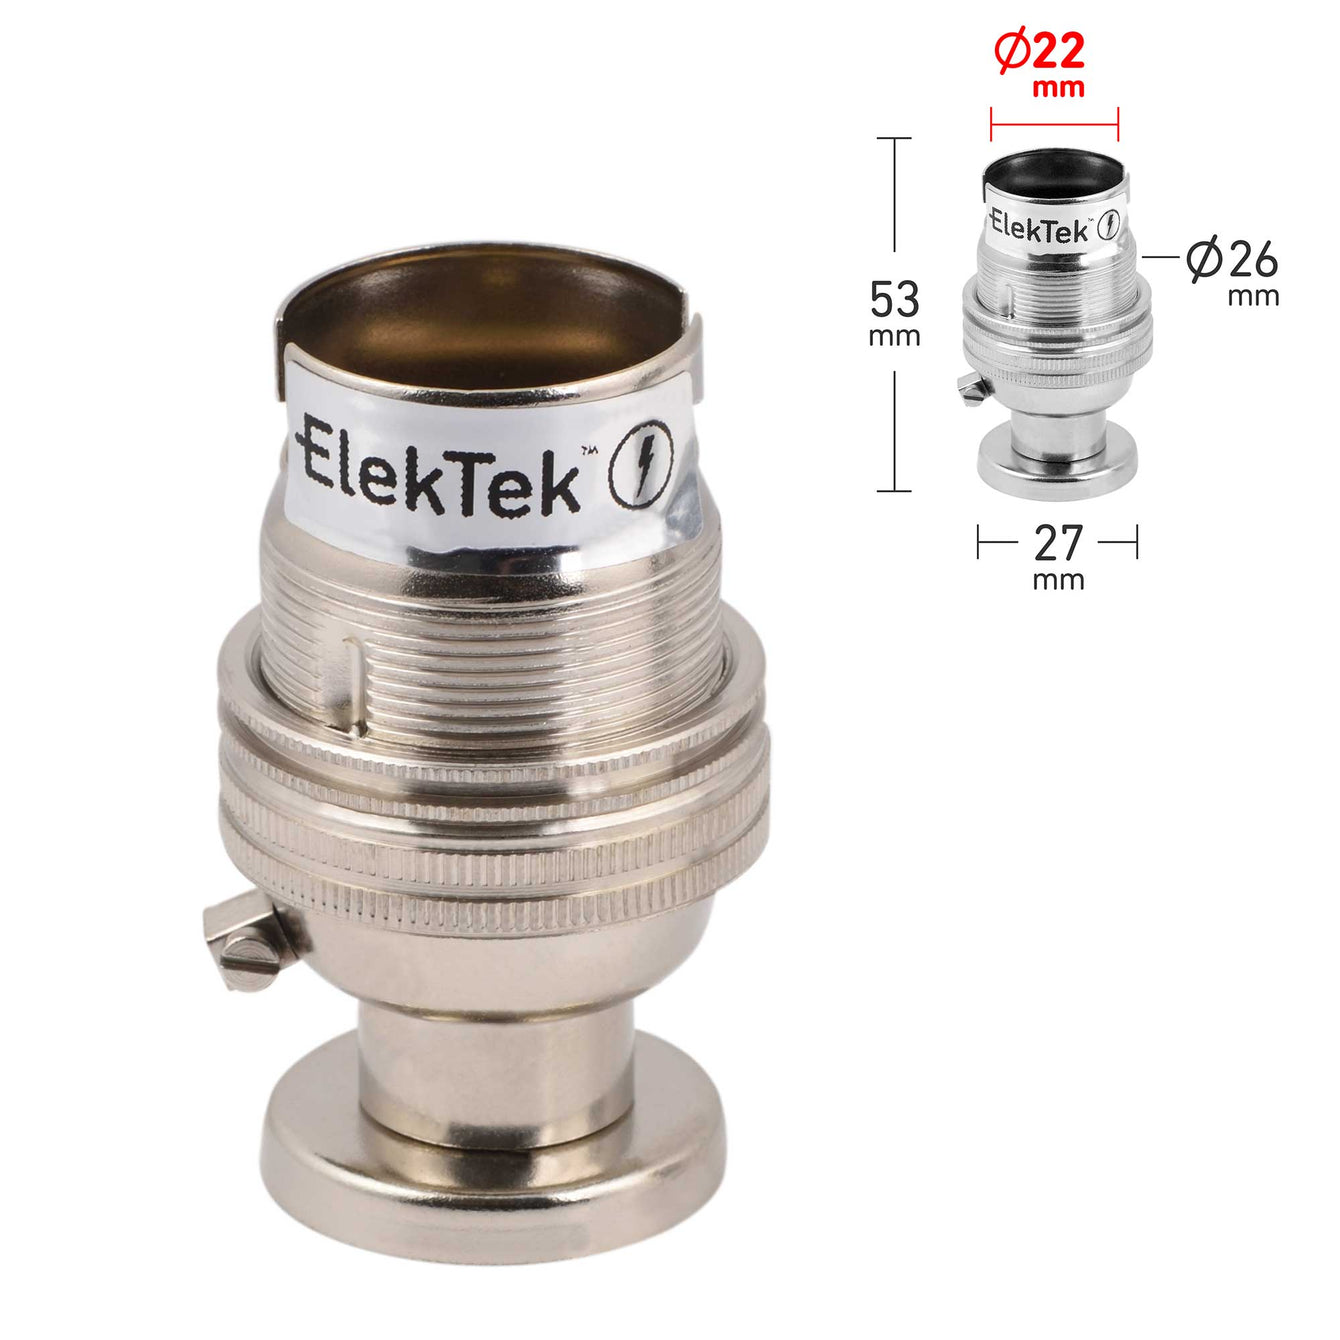 ElekTek Lamp Holder Half Inch Bayonet Cap B22 Unswitched With Shade Ring Back Plate Cover and Screws Solid Brass - Buy It Better